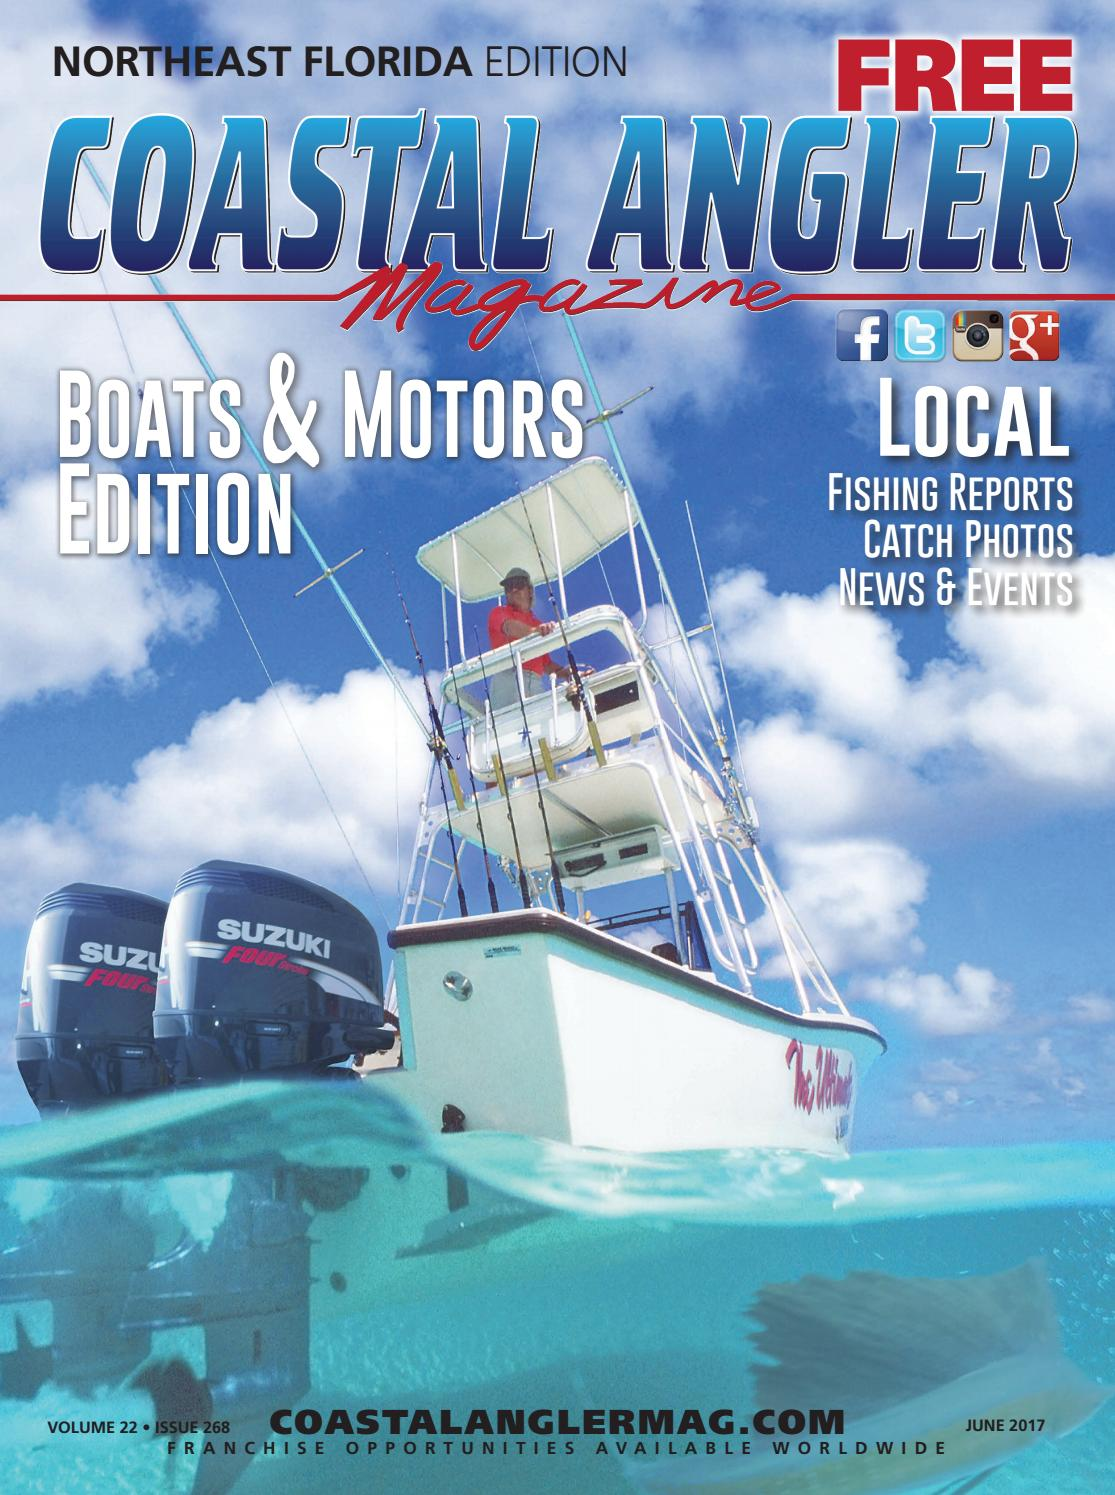 Coastal Angler Magazine - June / Northeast Florida by Coastal Angler  Magazine - issuu